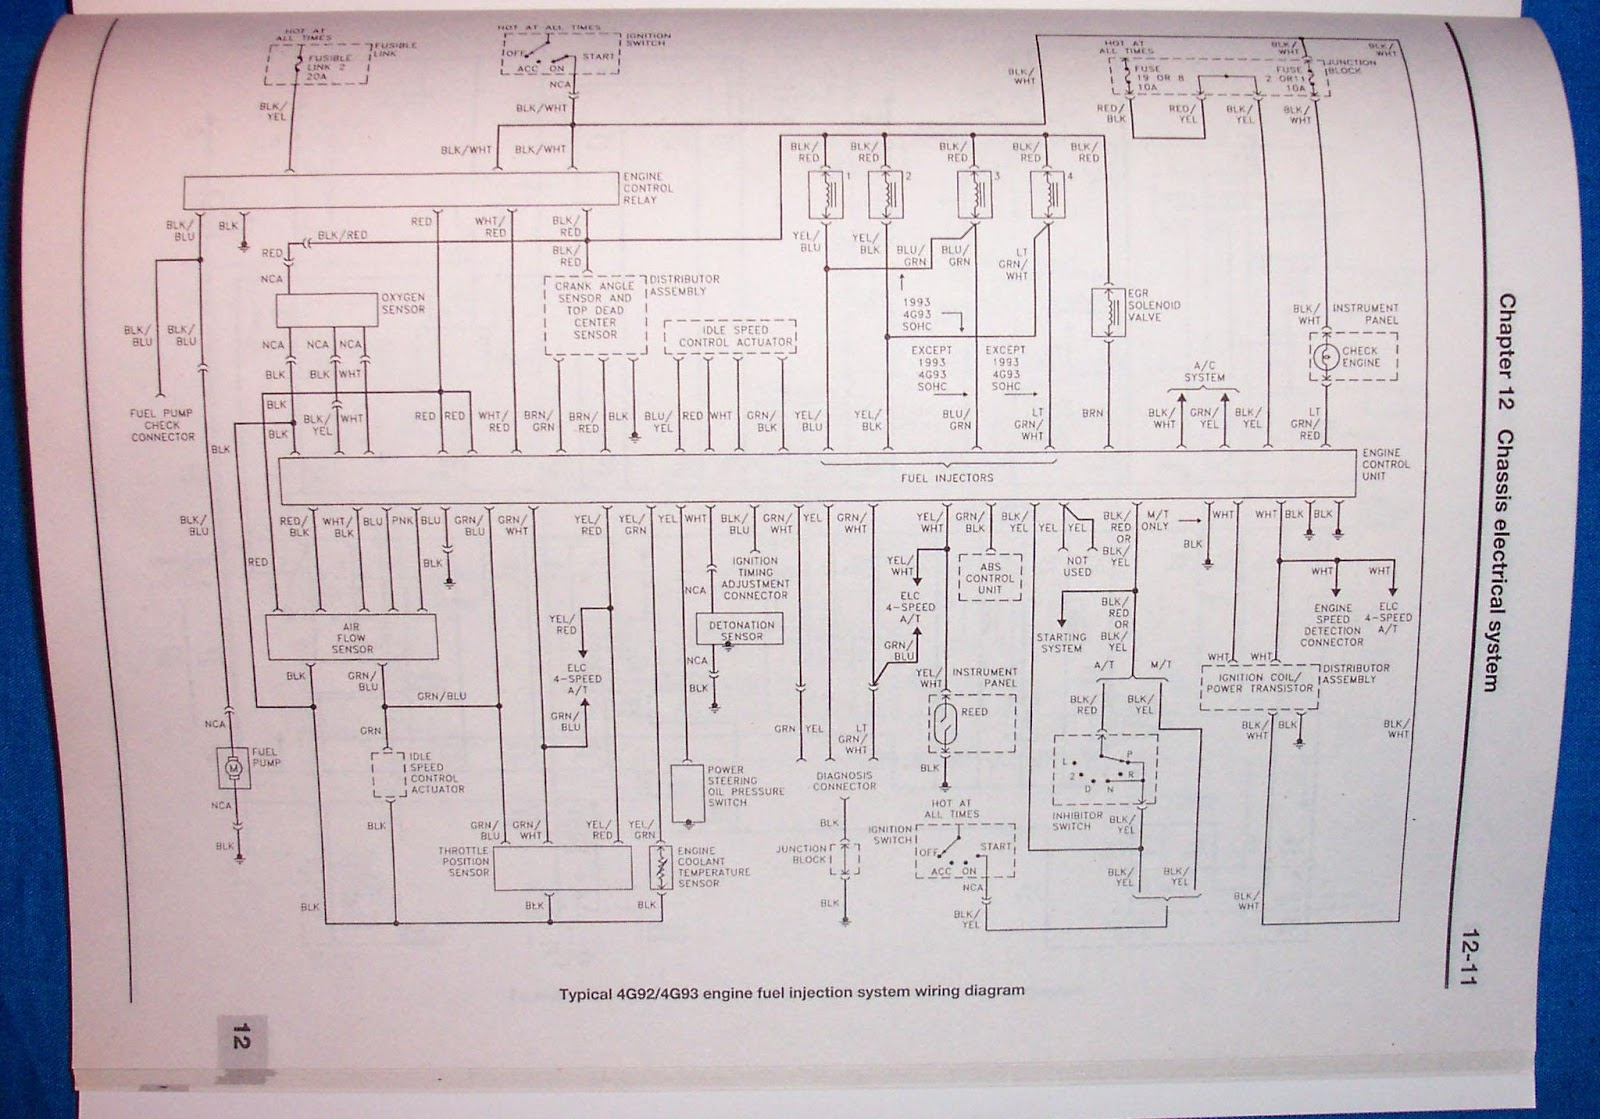 small resolution of mitsubishi 4g92 engine diagram wiring diagram operations mitsubishi 4g92 engine diagram